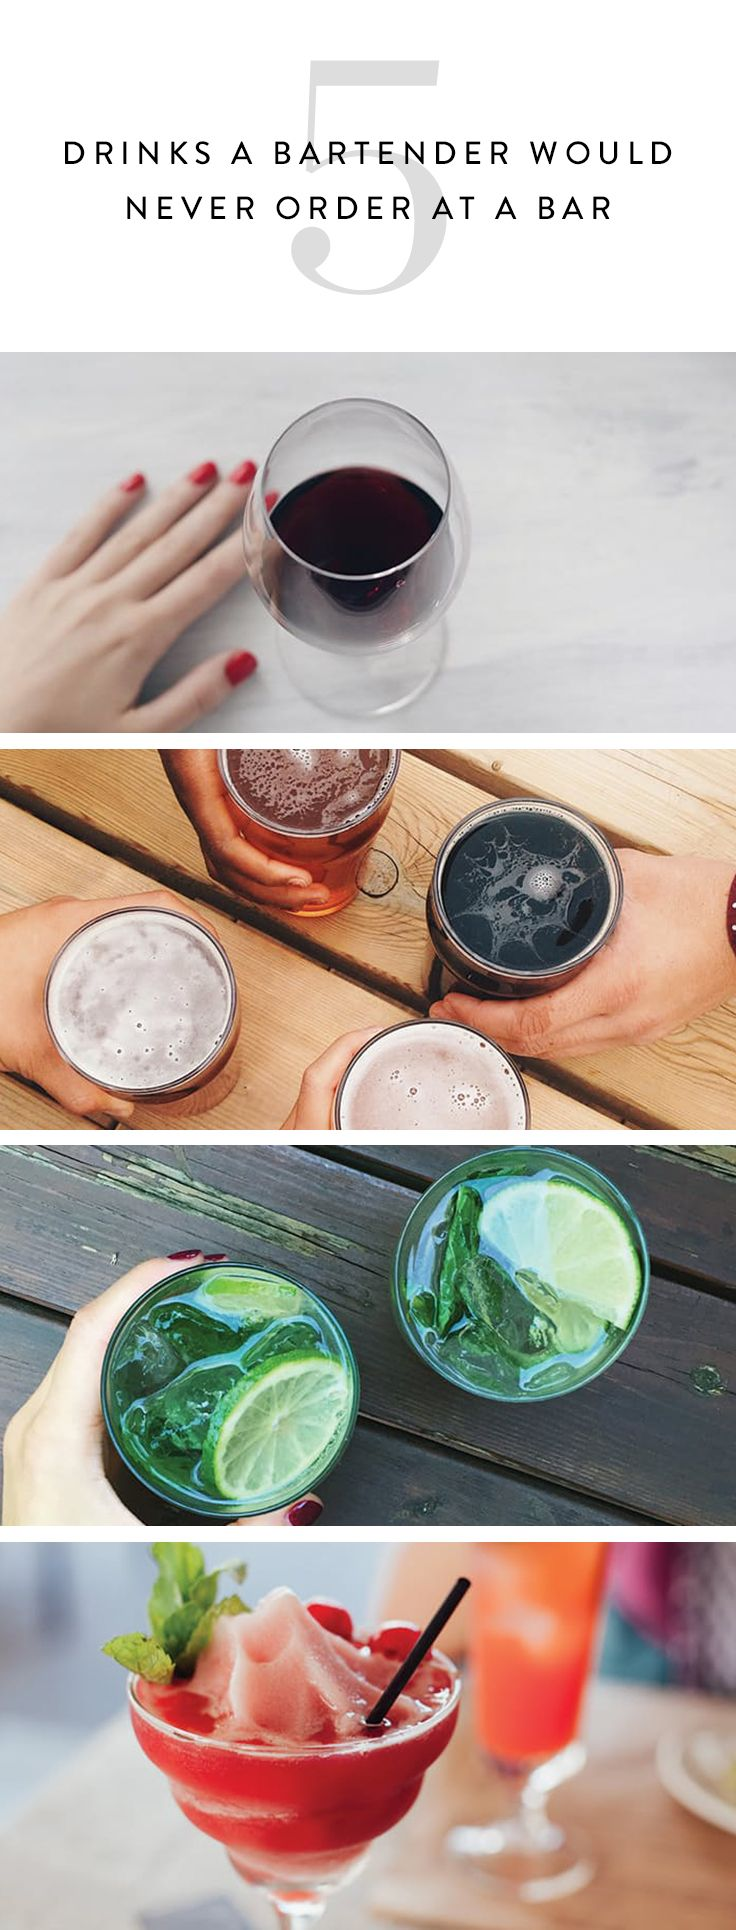 5 Drinks a Bartender Would Never Order at a Bar | Sweet ...